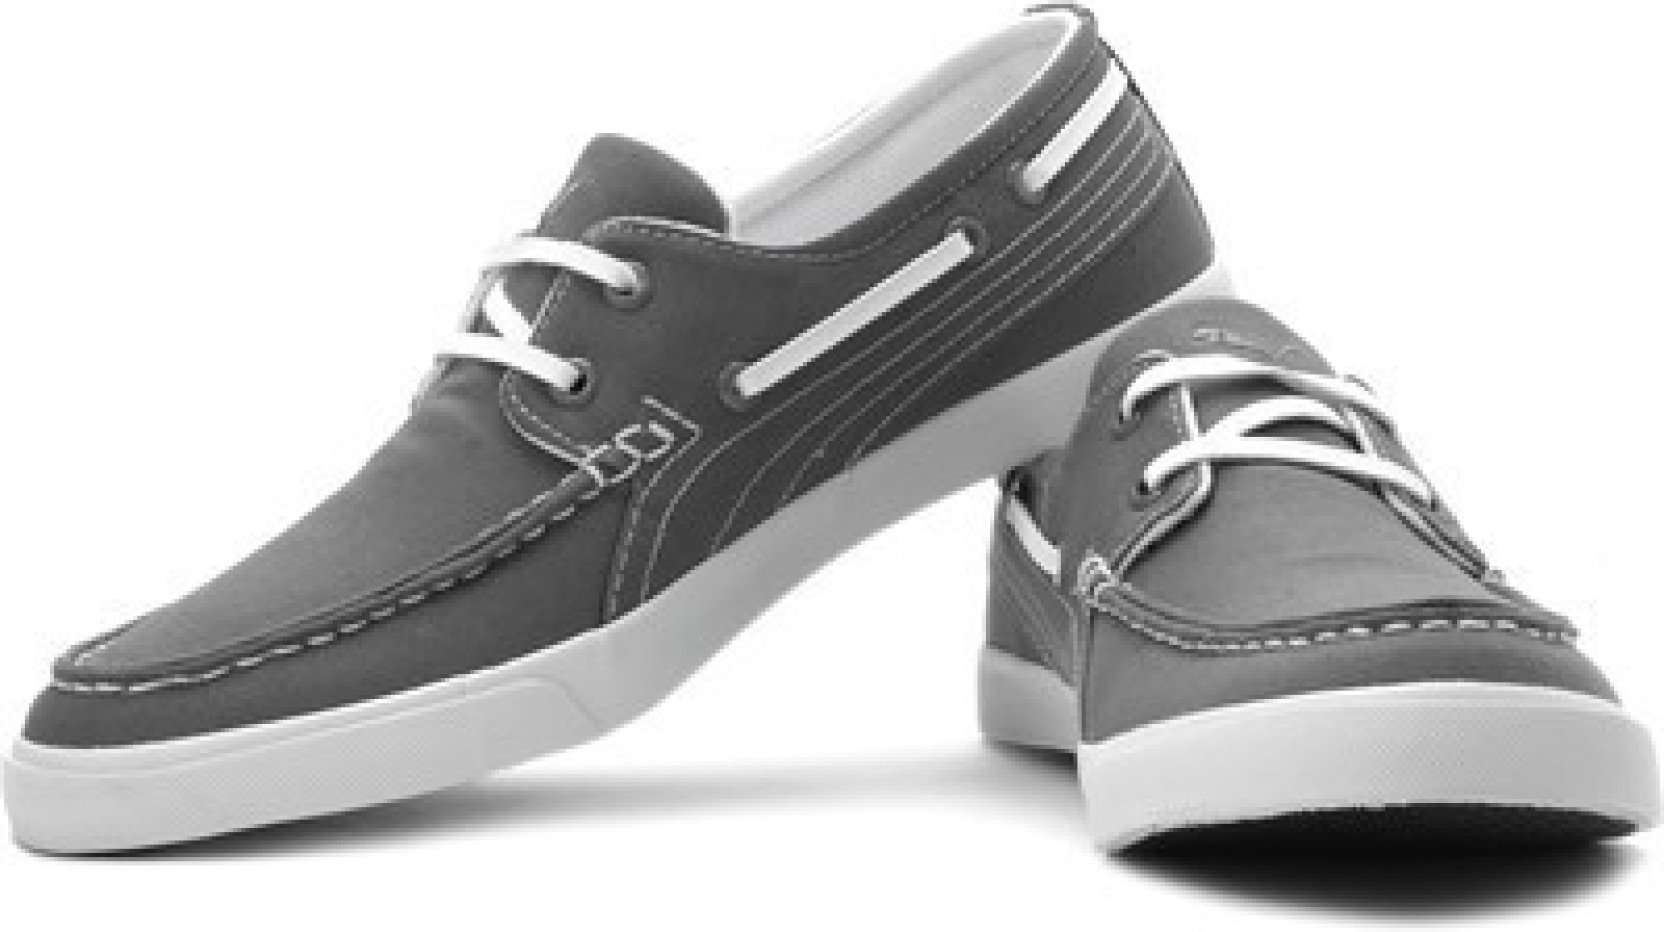 Puma Yacht Cvs Idp Boat Shoes Price